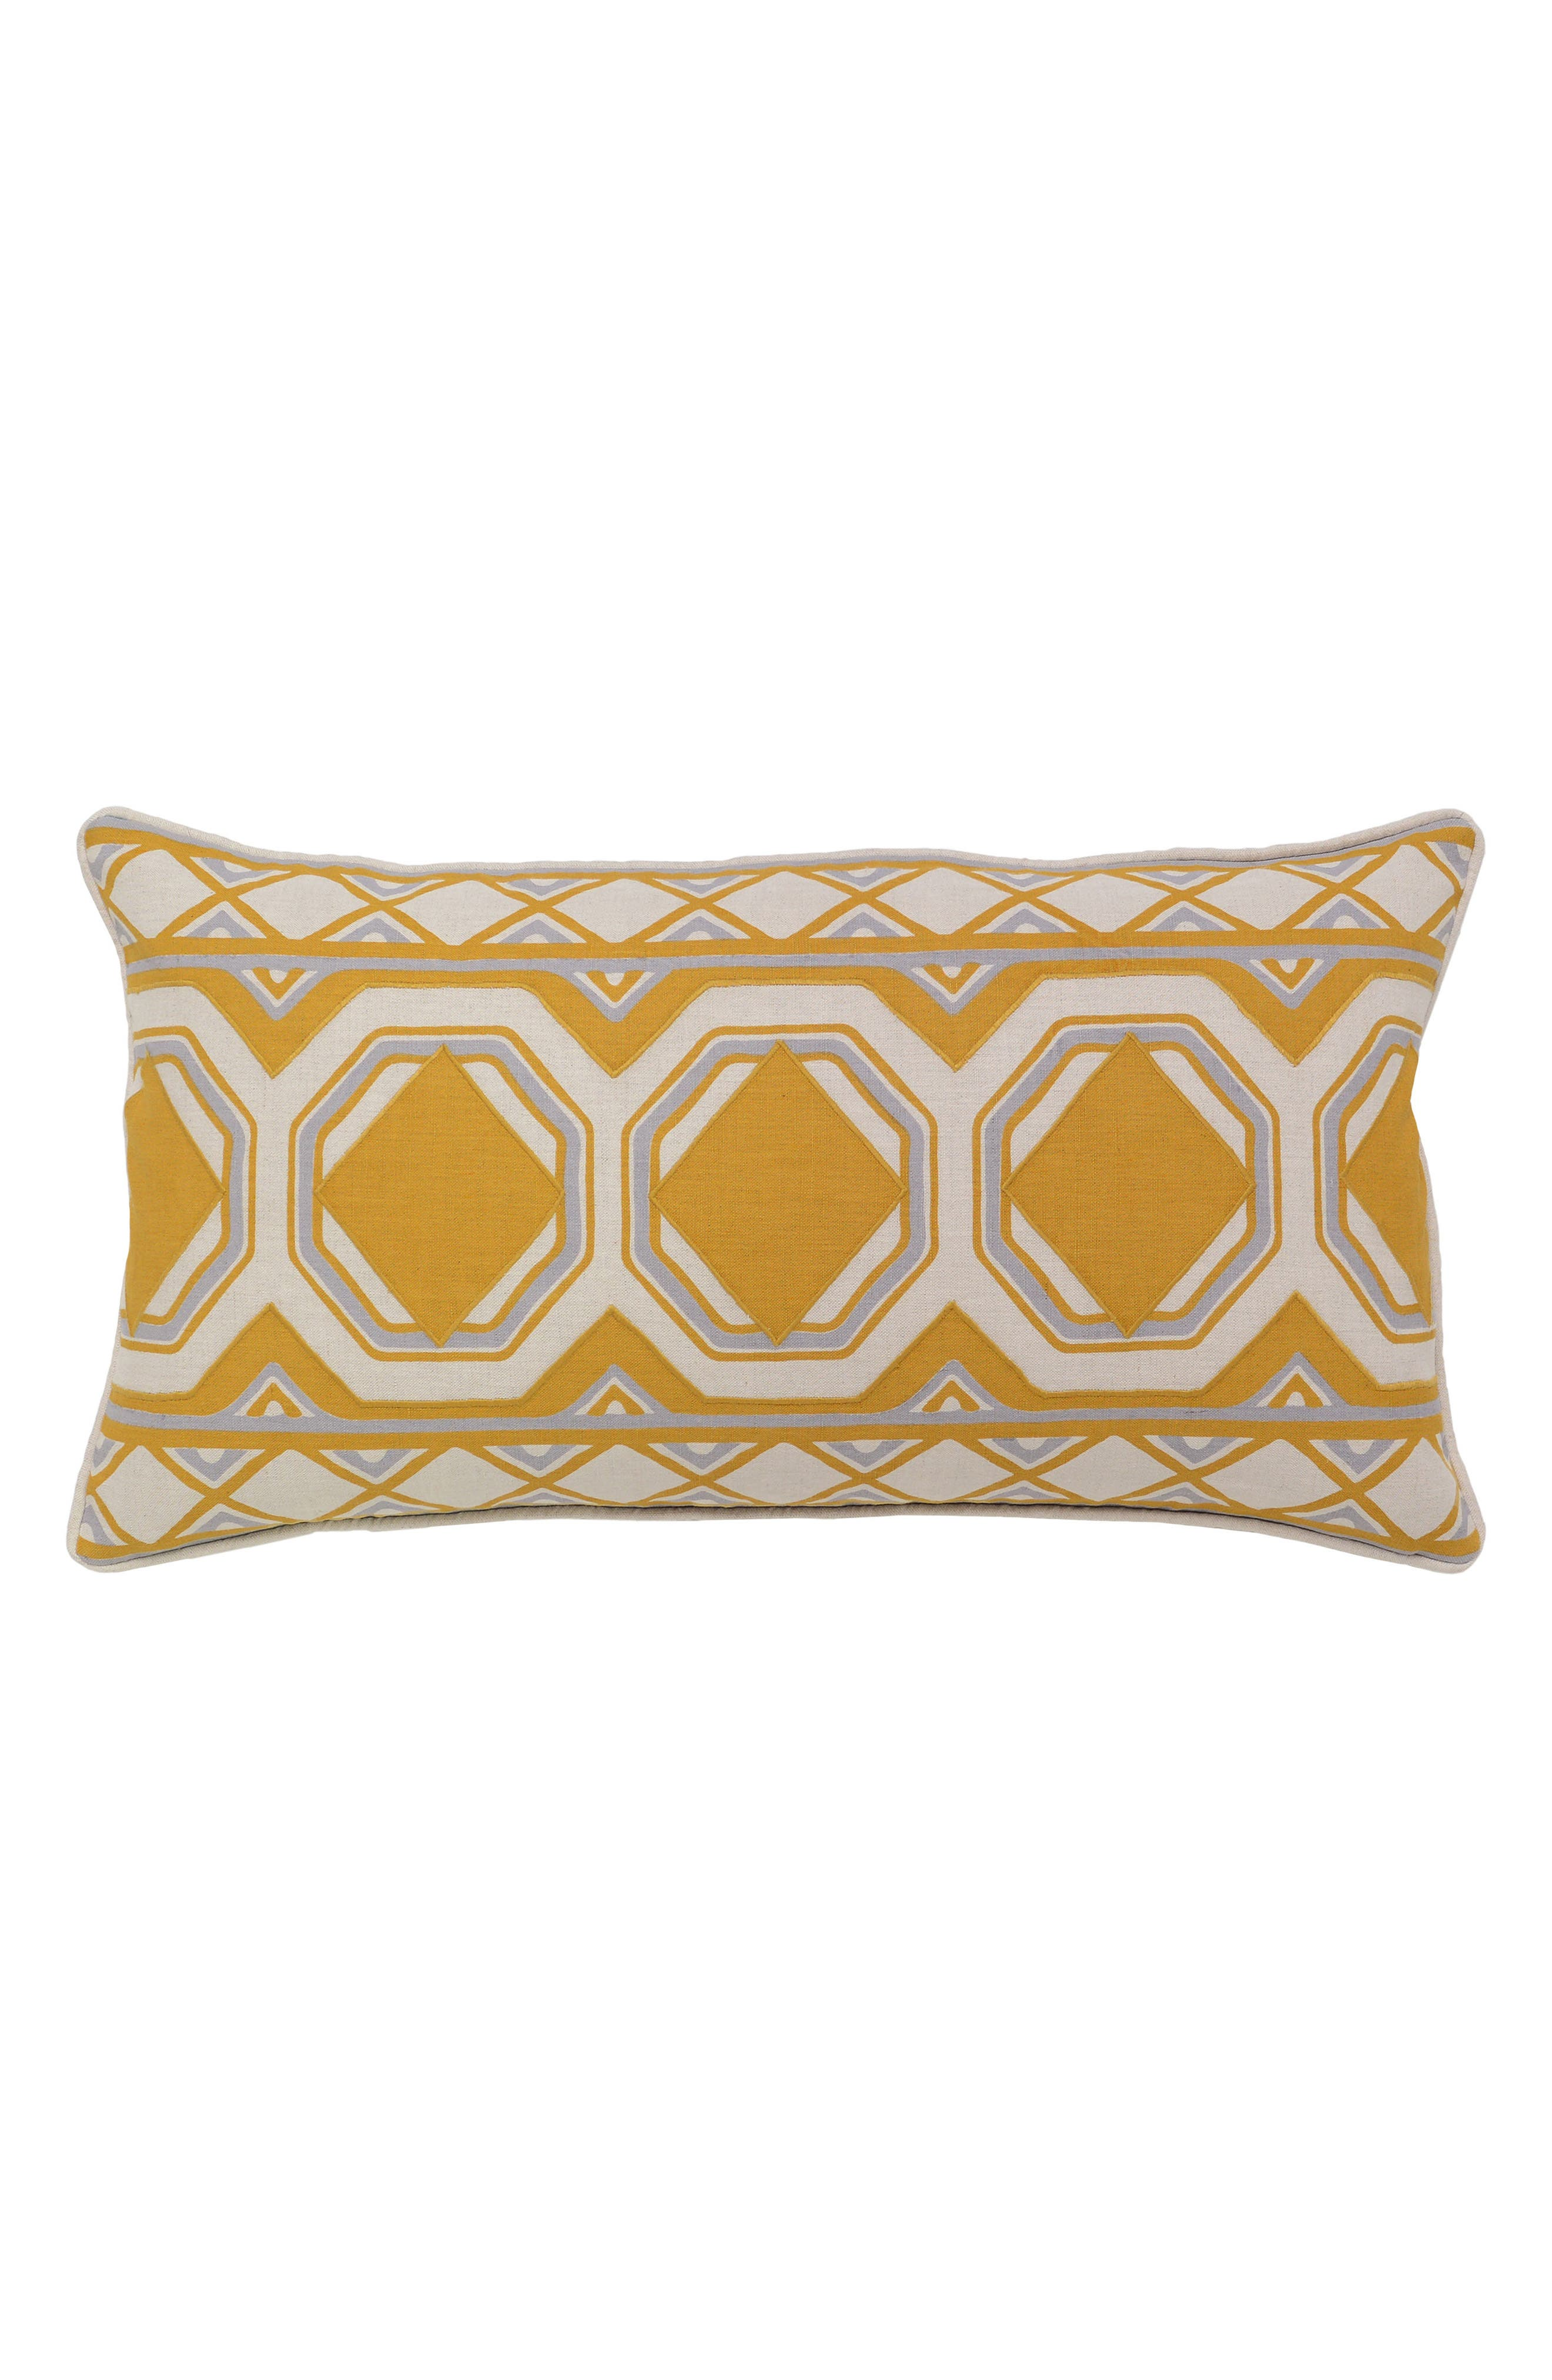 Cheval Accent Pillow,                             Main thumbnail 1, color,                             OCHRE